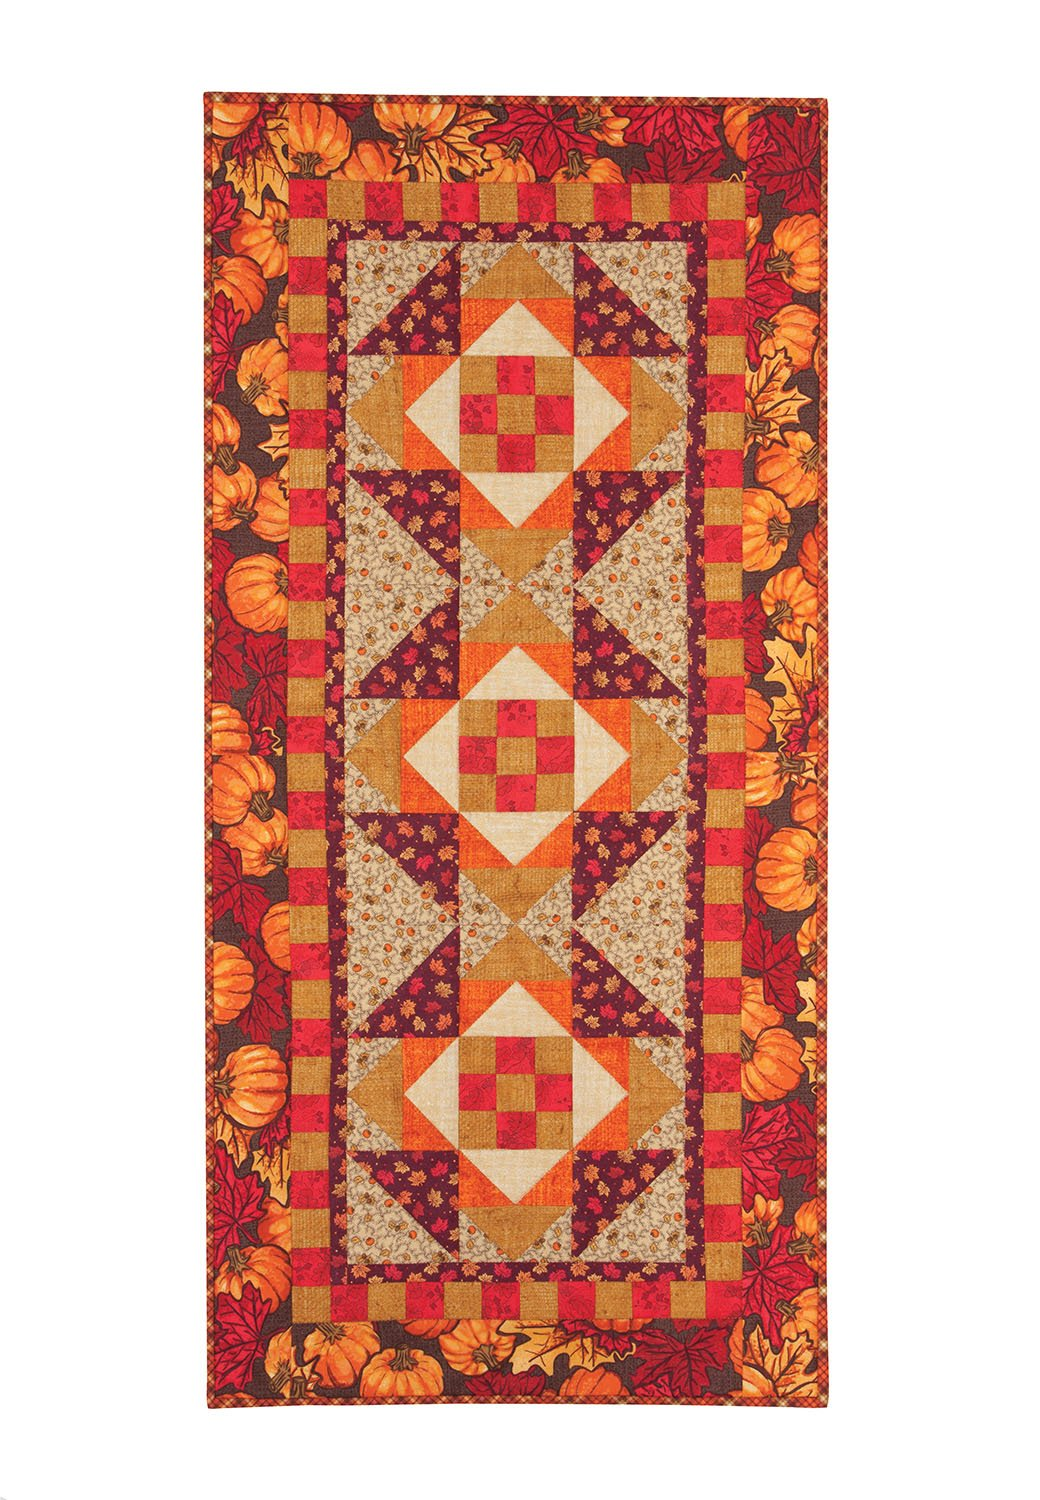 Connecting Threads Table Runner Quilting Kit (Florin)